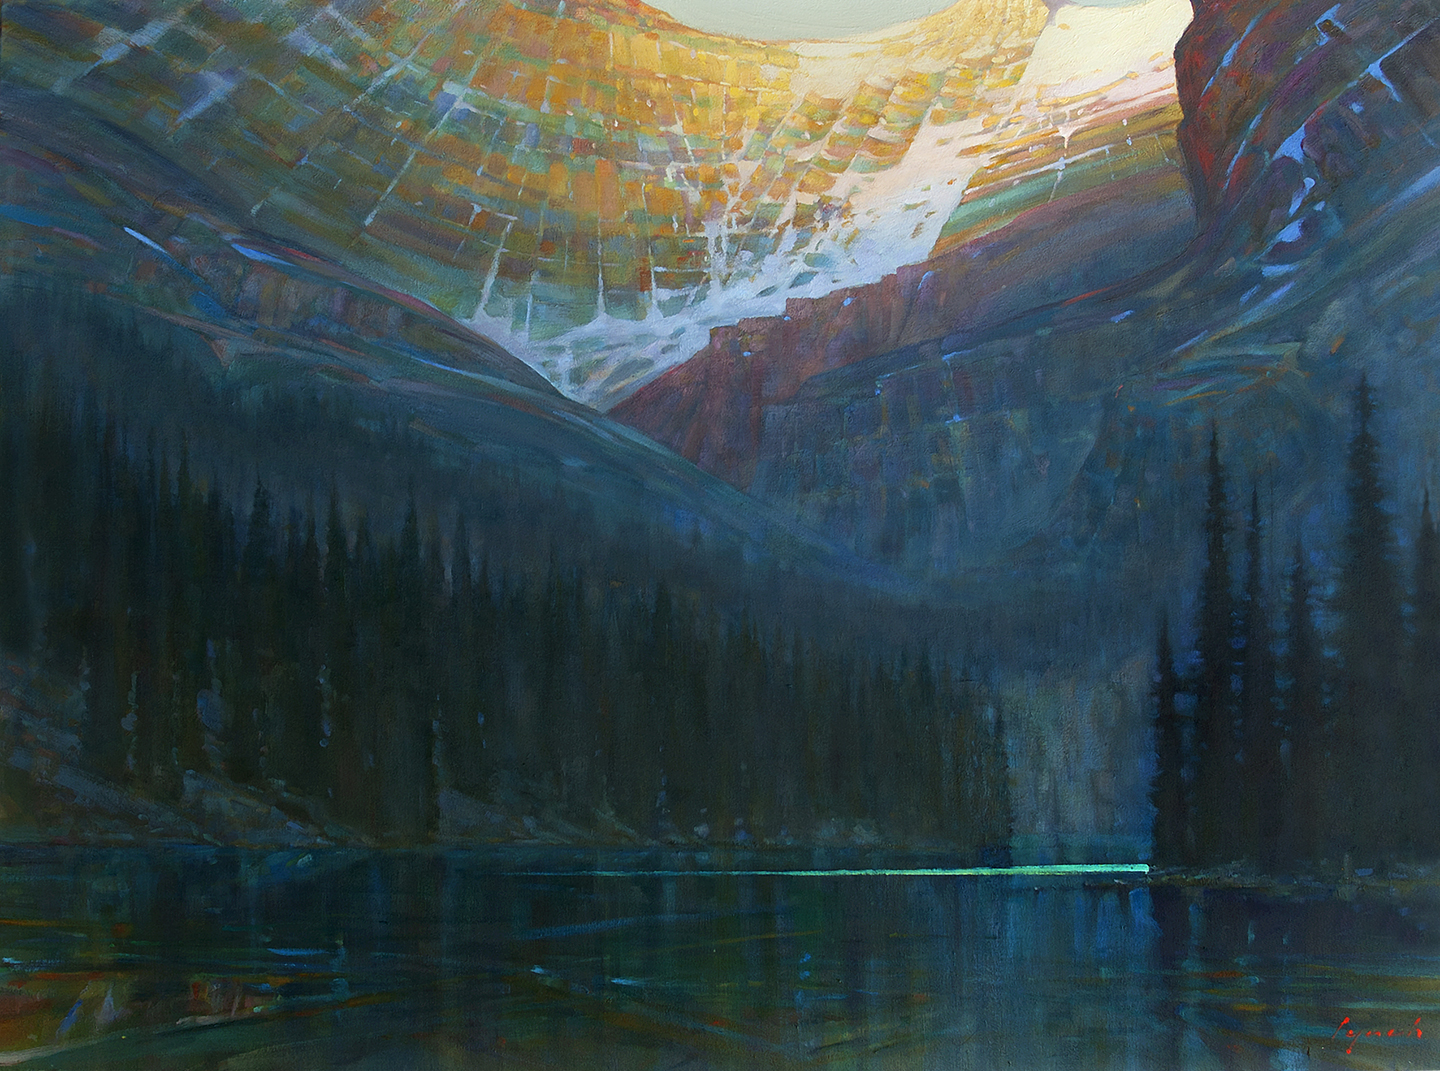 Last Light O'Hara 38 X 48 in. oil on canvas - Mountain Galleries